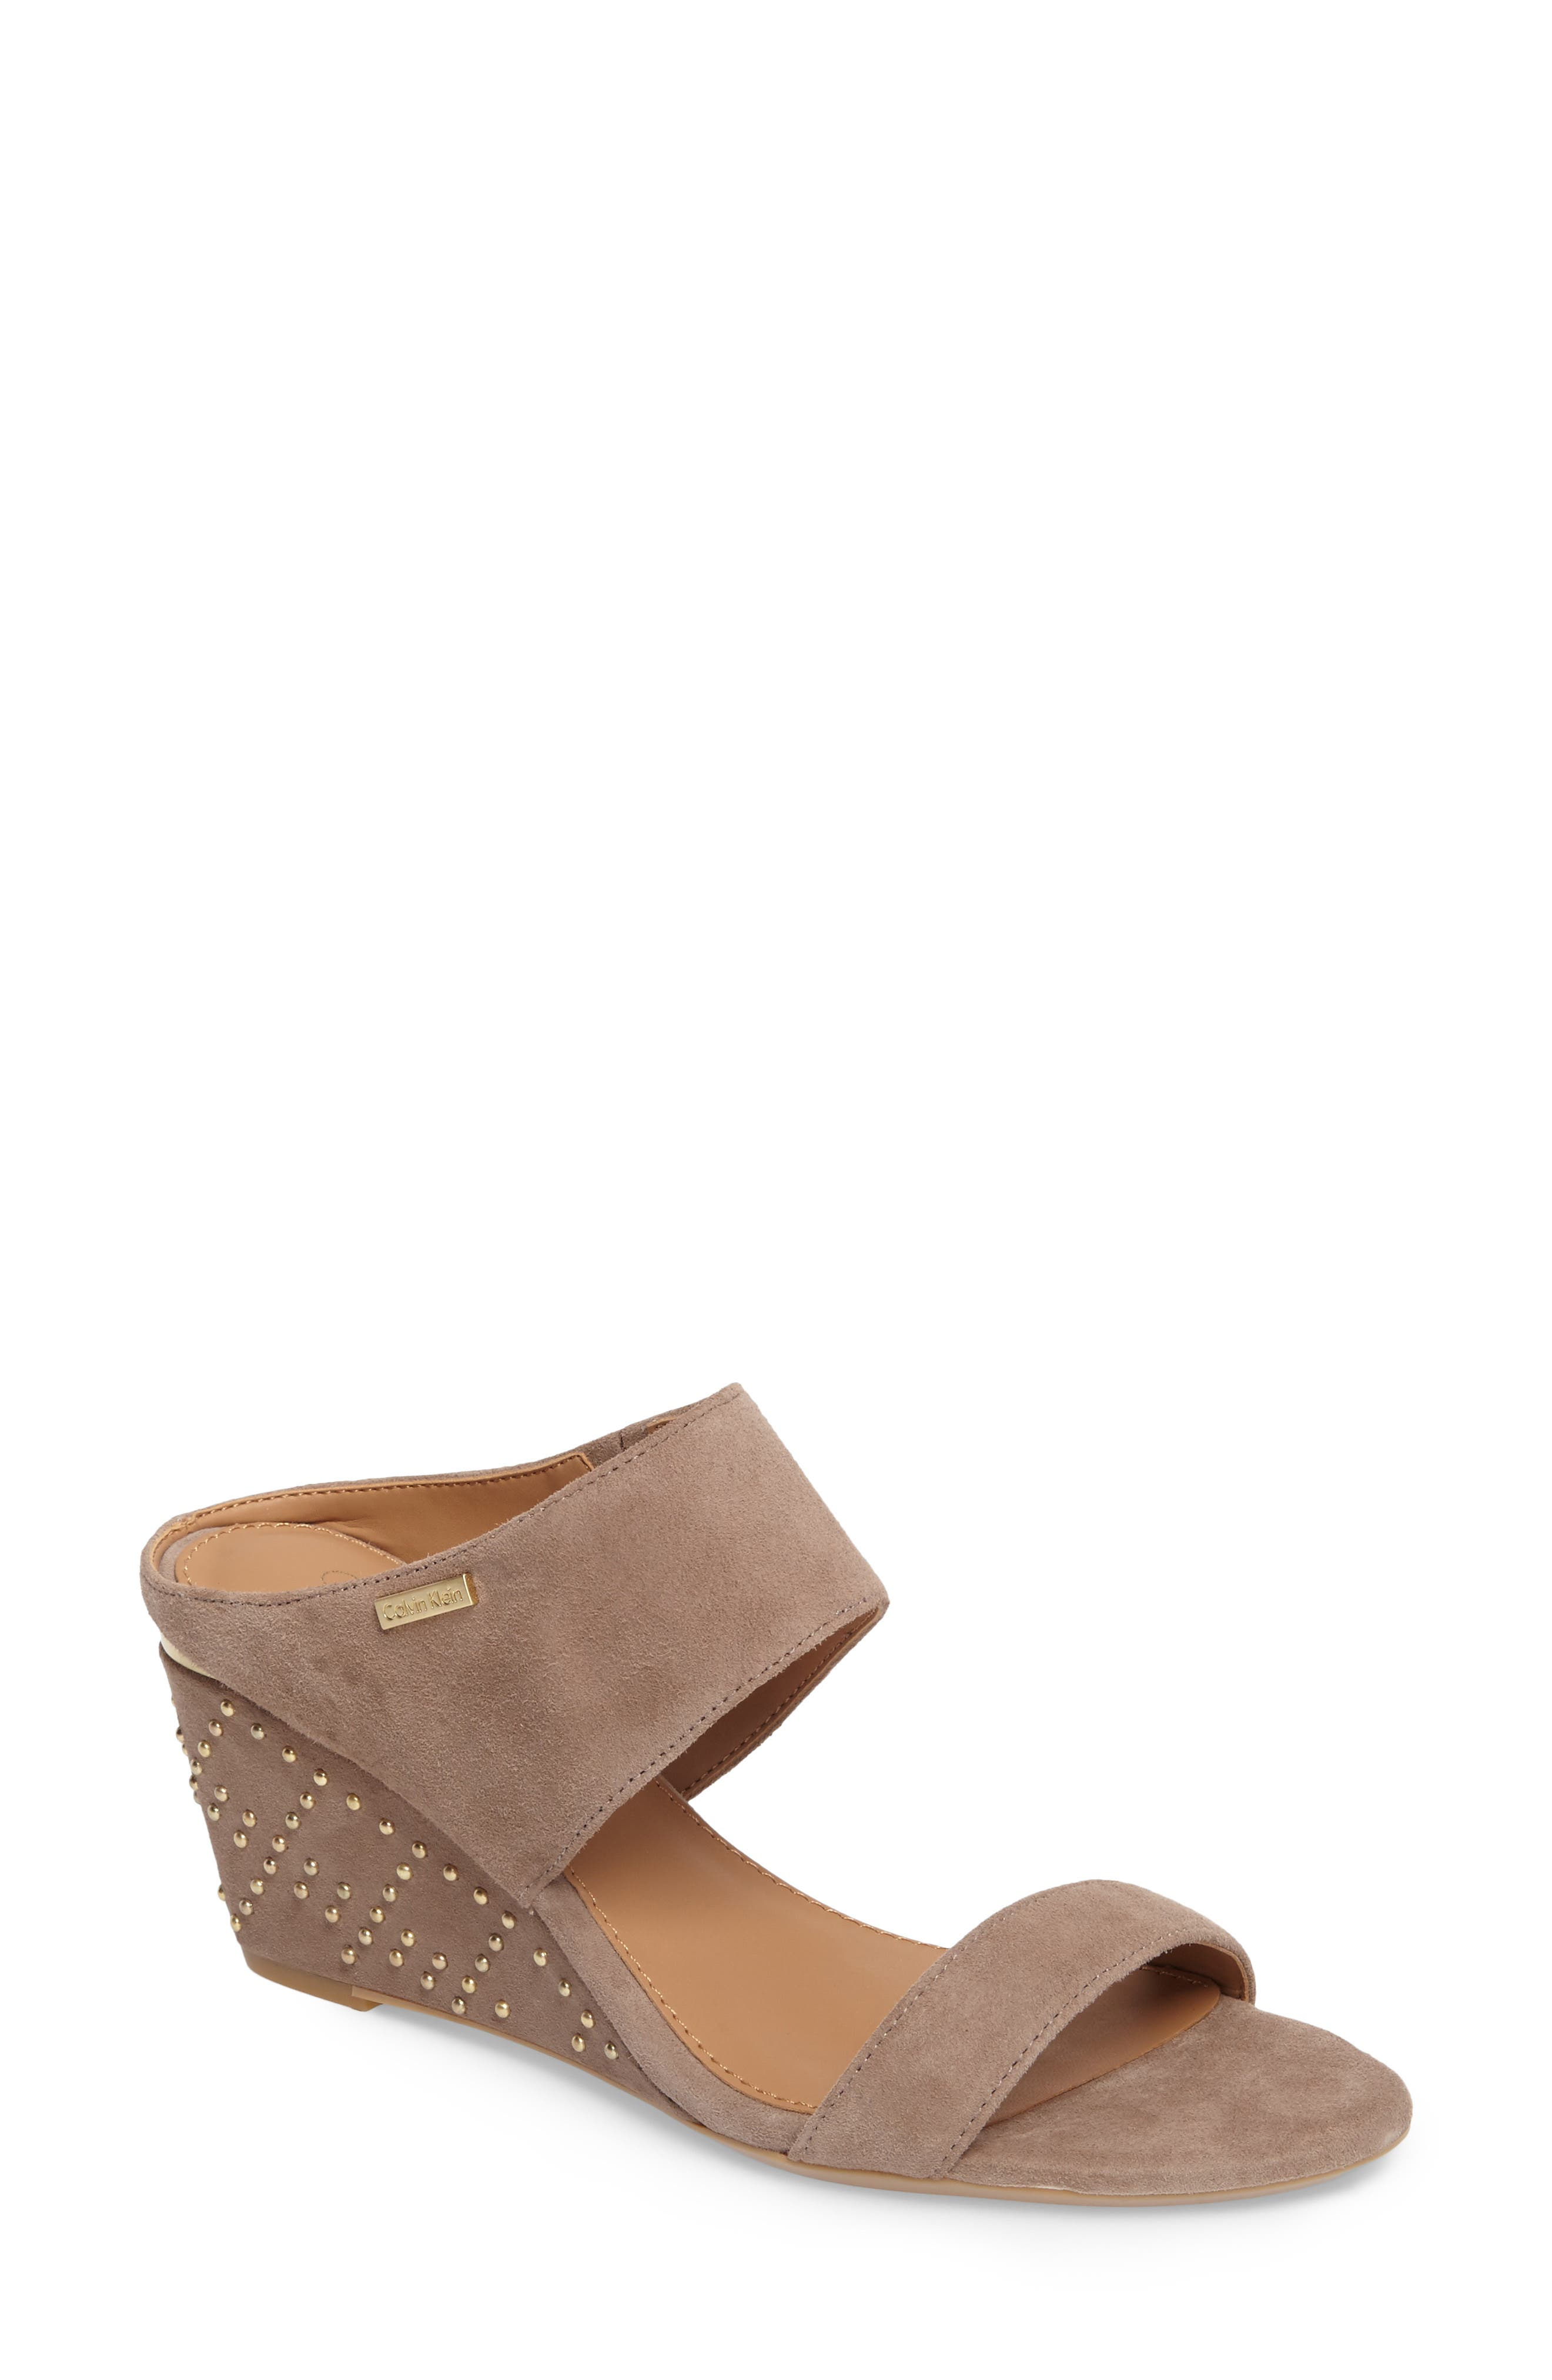 Phyllis Studded Wedge Sandal,                             Main thumbnail 1, color,                             Winter Taupe Suede